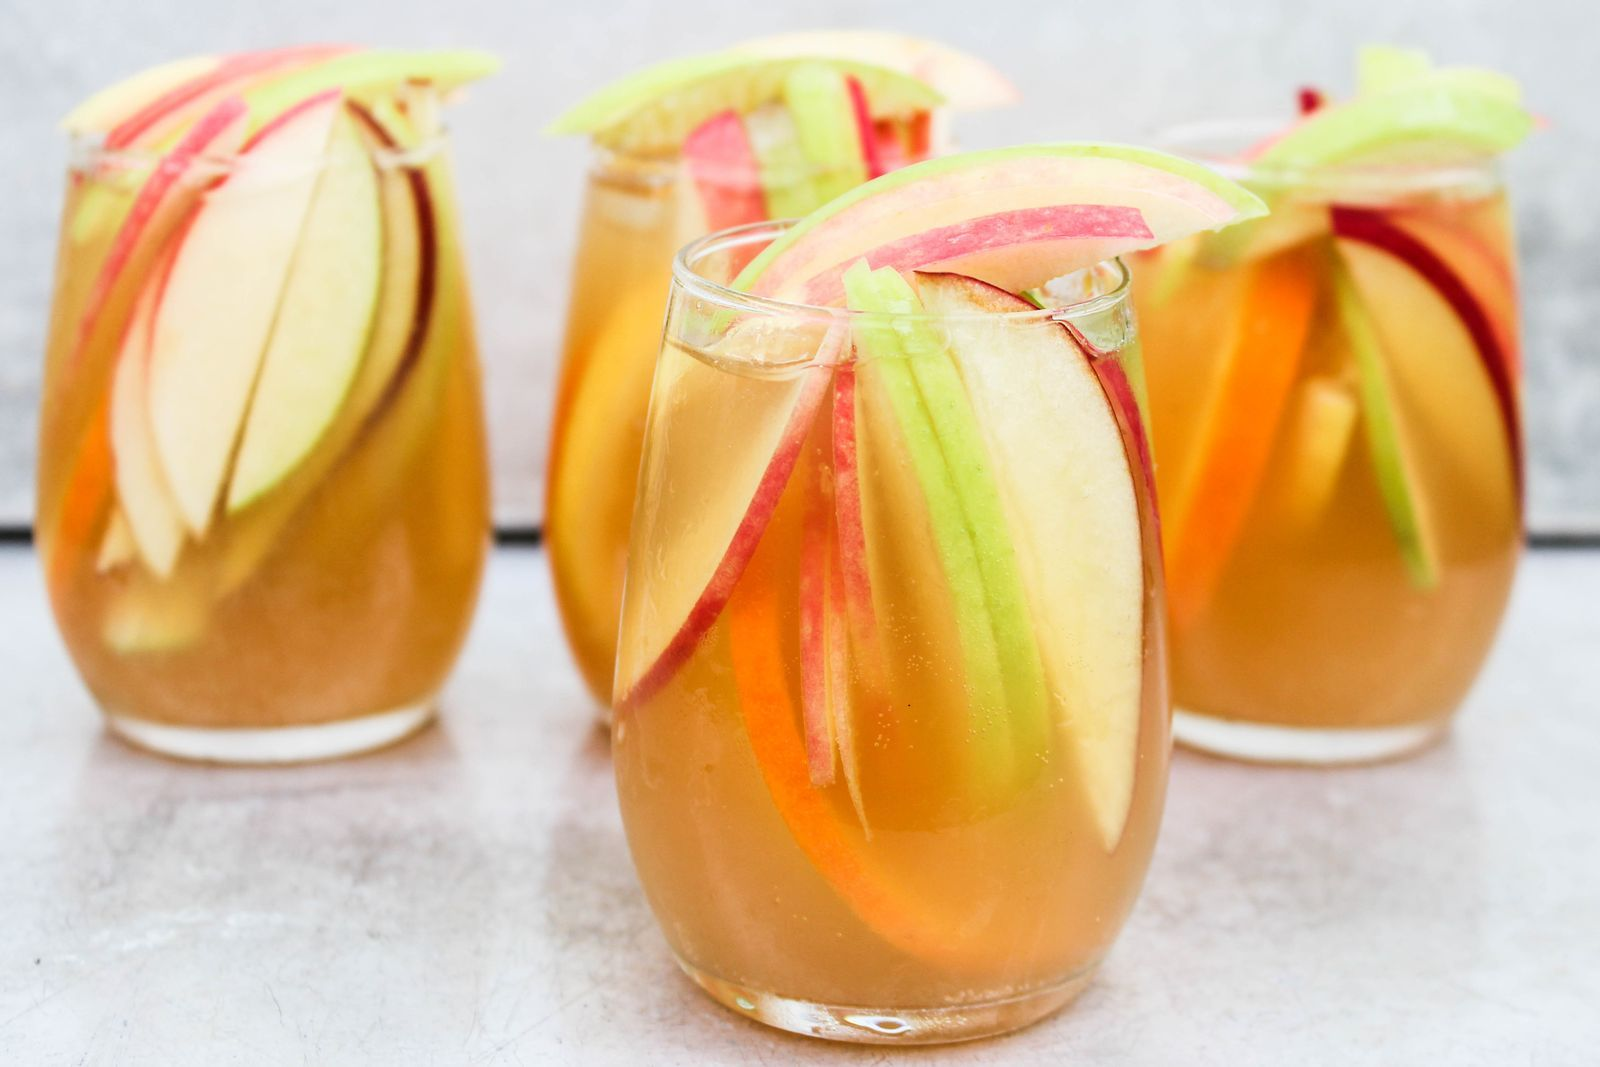 Usher in Fall With These Versatile Apple Cider Recipes